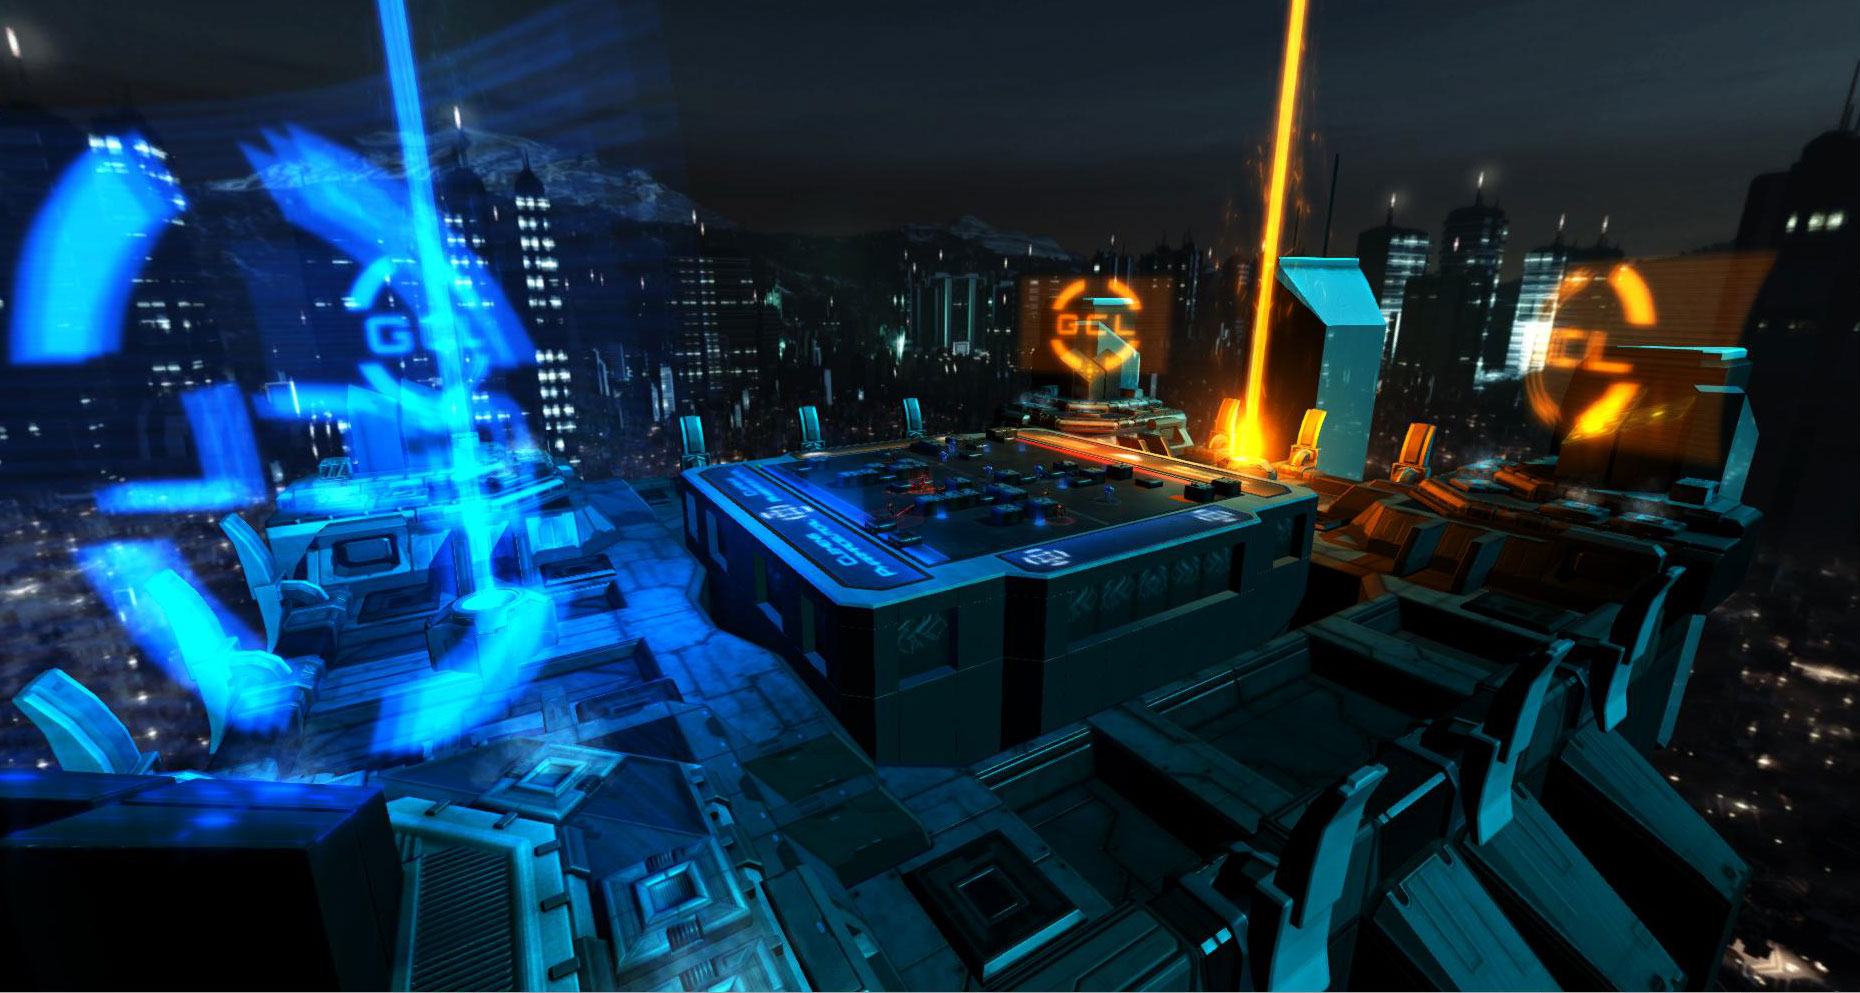 Frozen Cortex Updated With Single Player Mode Set For